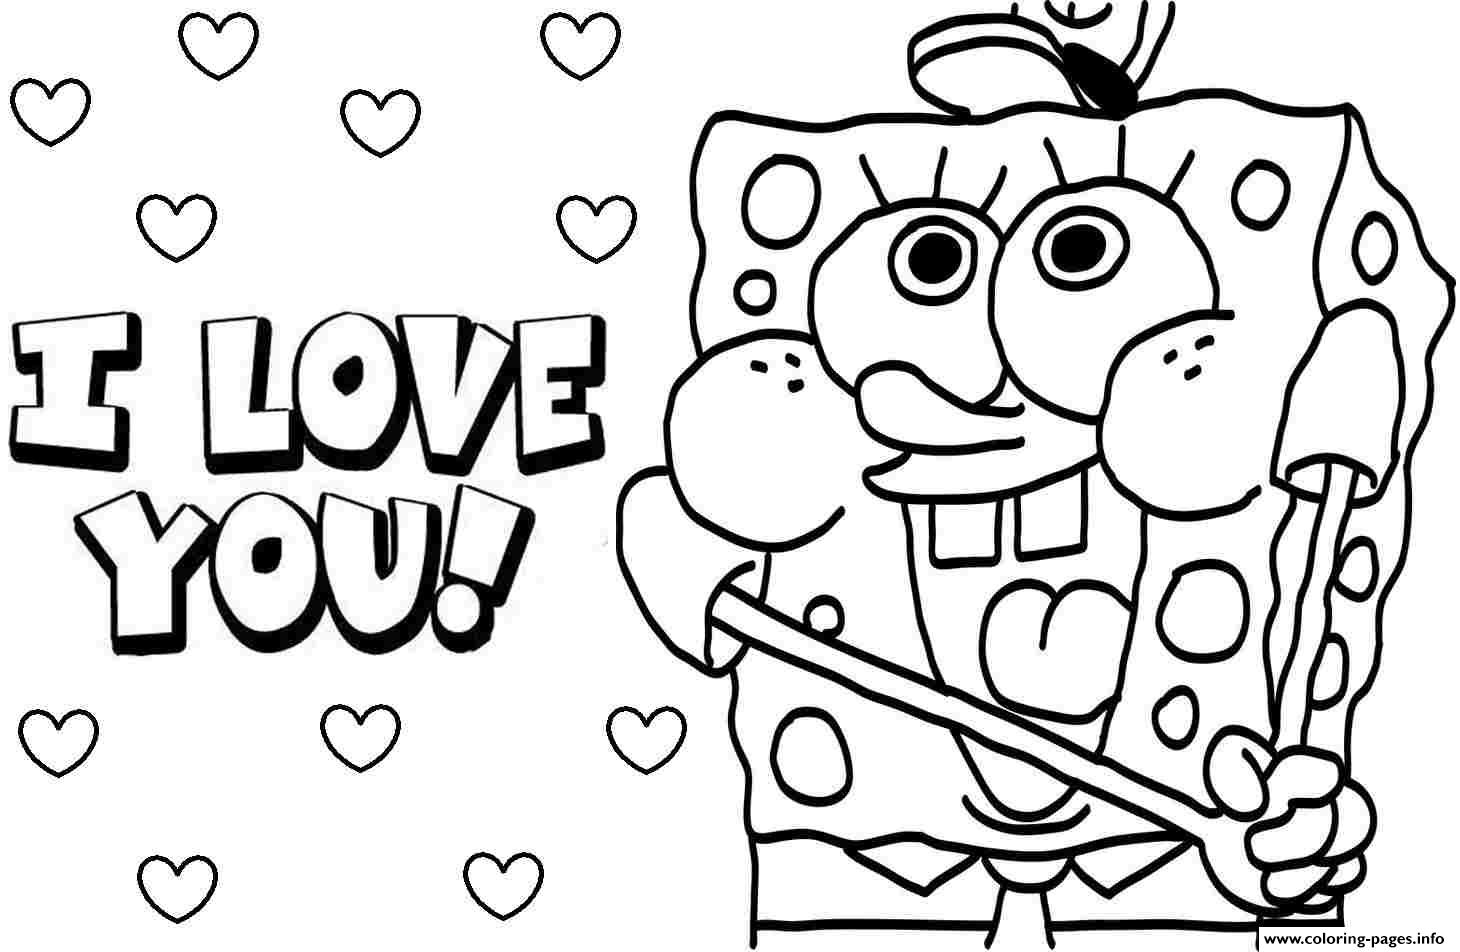 Sponge bob i love you valentine day coloring pages printable for Love coloring pages printable